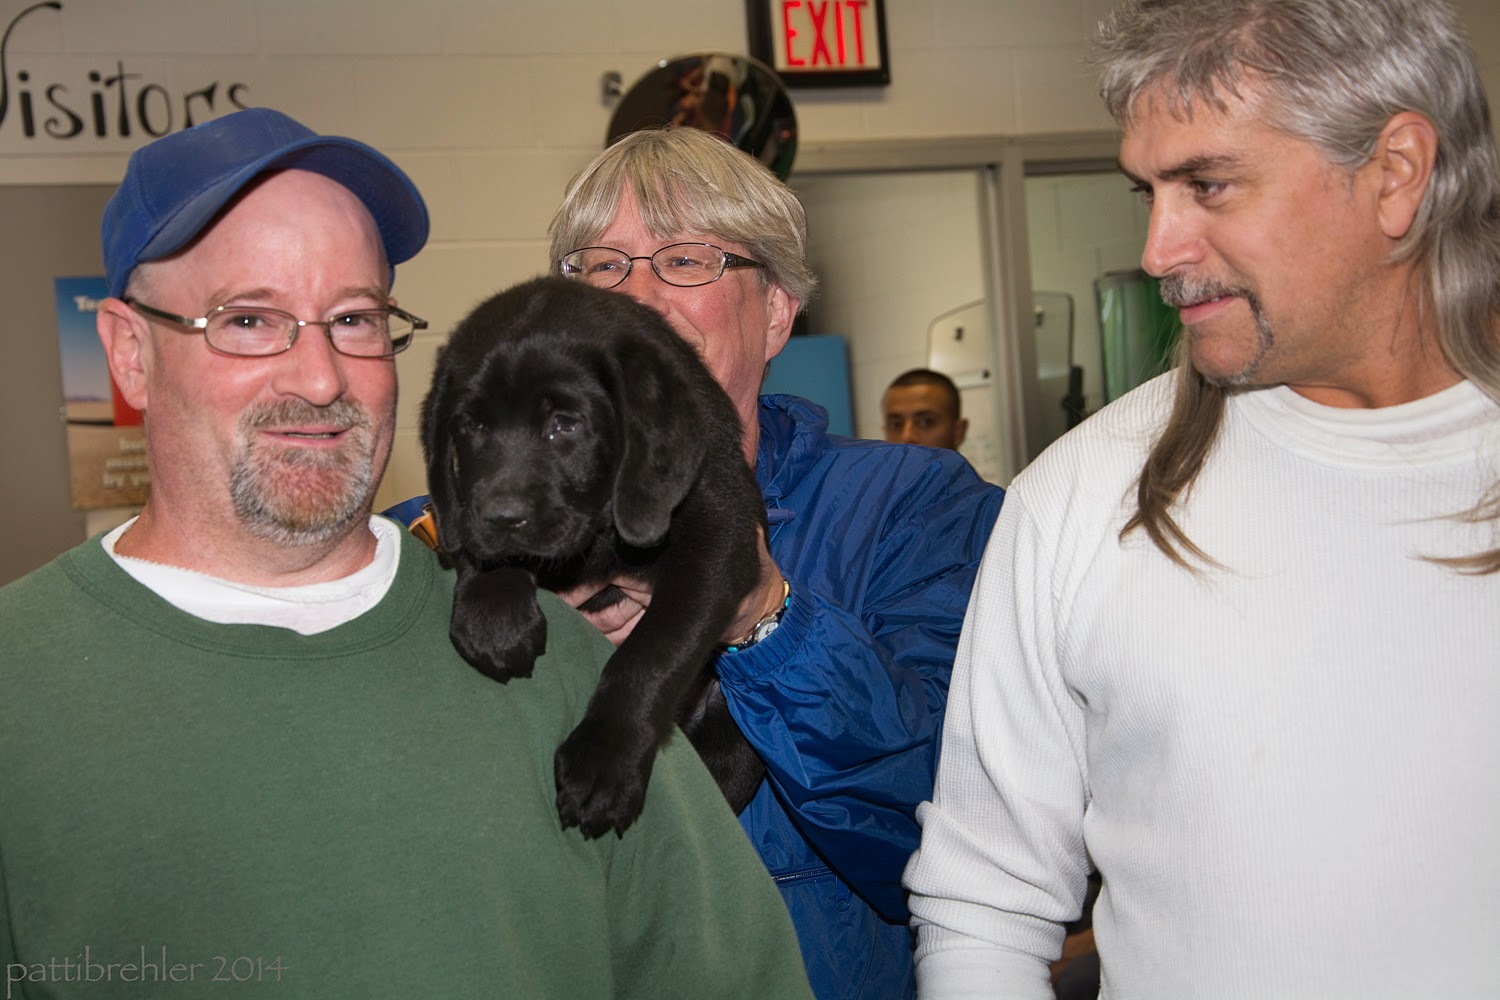 A man wearing a green sweatshirt and a blue ball cap and glasses is facing the camera on the left. On the right is a man wearing a white long sleeved tshrit. He is looking at the other man. Between them and behind them is a woman with short white hair and glasses, wearing a blue windbreaker. She is holding a small black lab puppy over the left shoulder of the man on the left. The puppy'es front paws are reaching over the man's shoulder.